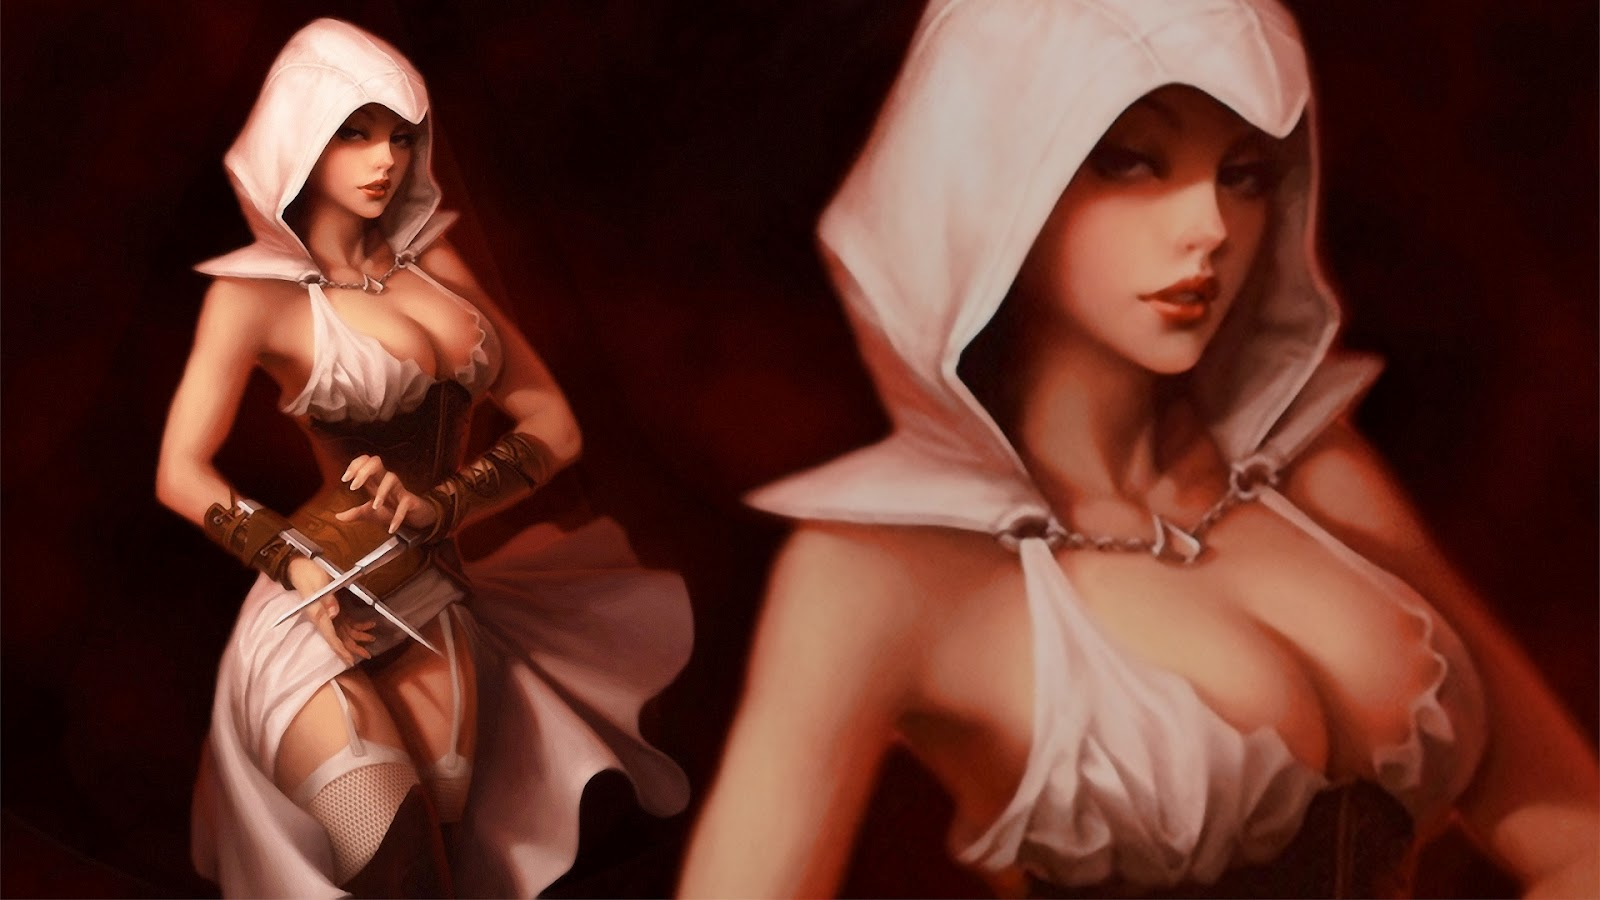 Assassin's creed porn parody xxx pic